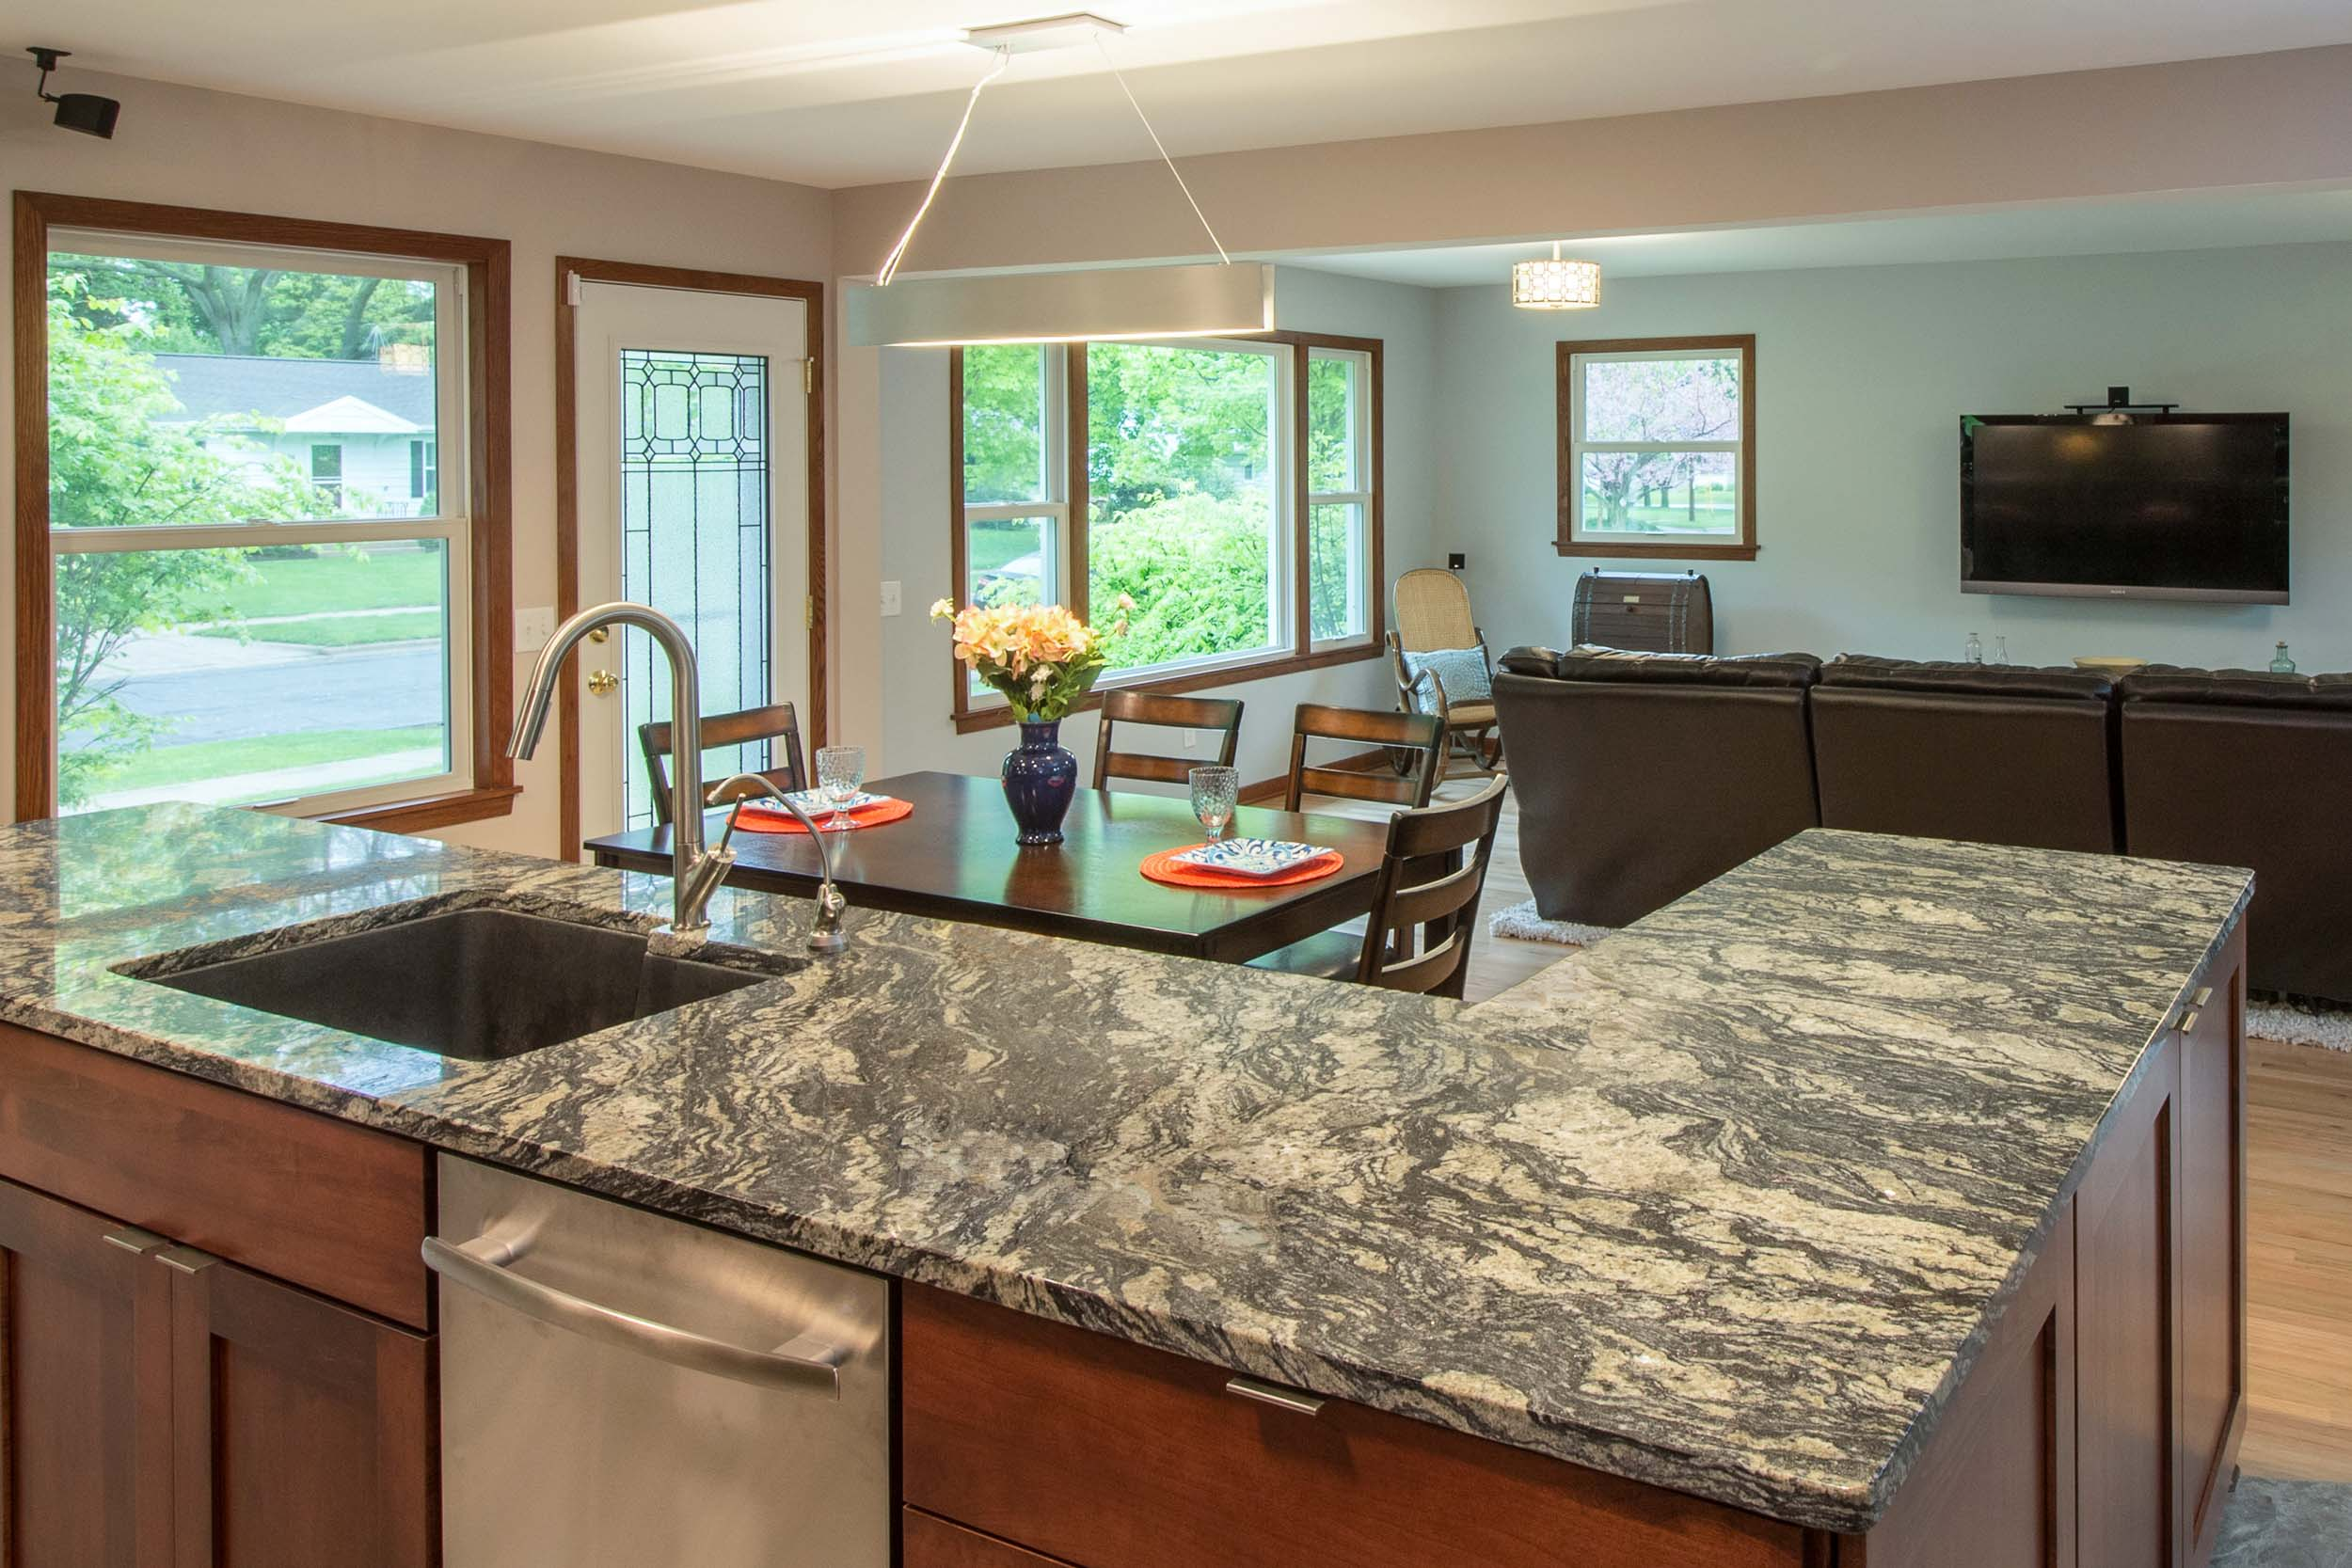 Open Concept Kitchen Remodel madison, Wisconsin